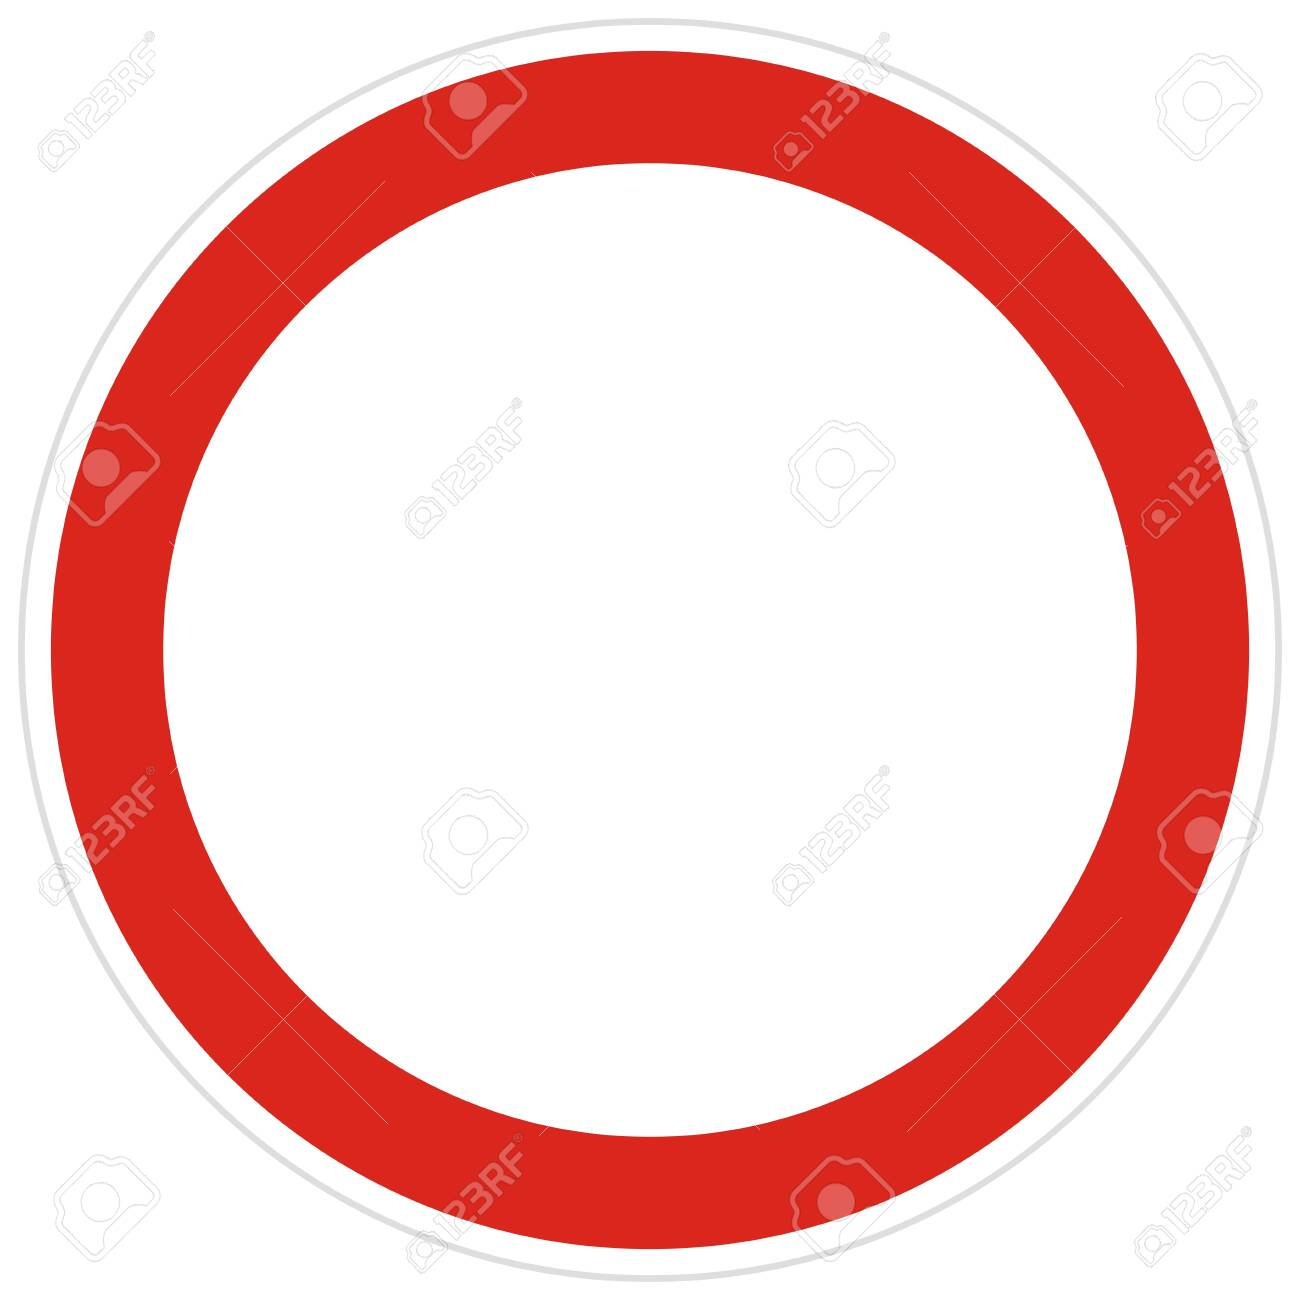 No entry road sign vector illustration. Not allowed sign isolated on white background. No entry of all vehicles in both directions. - 147431485